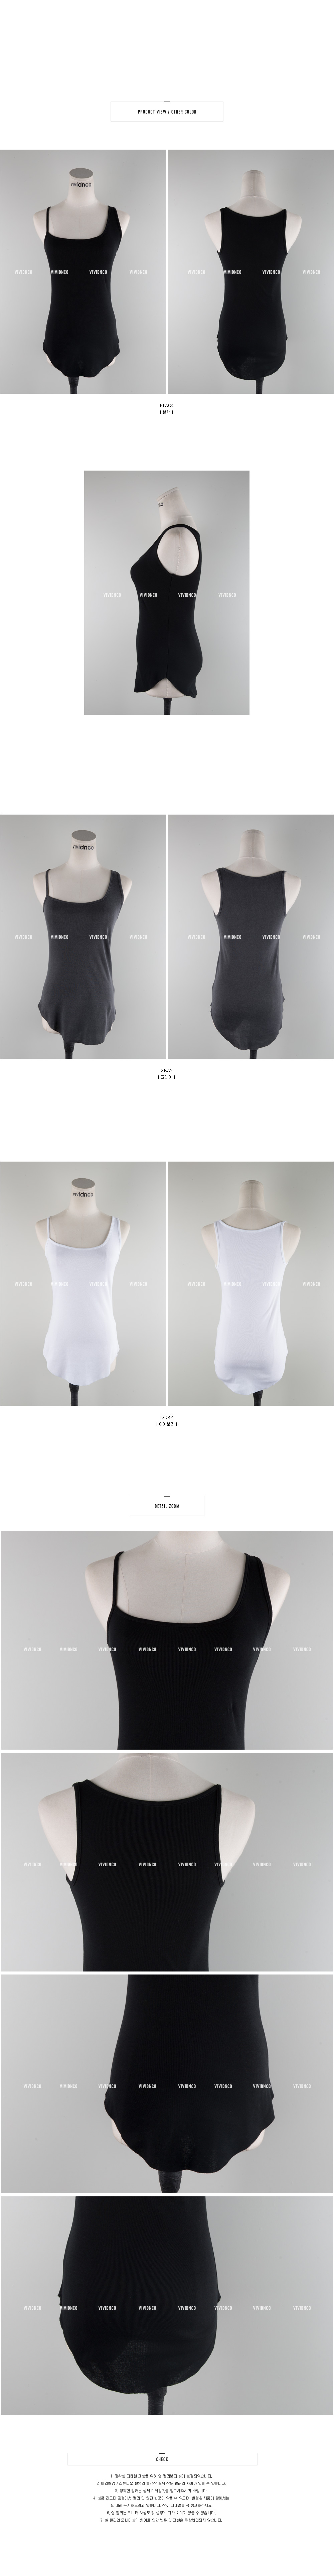 [ VIVIDNCO ] Marion sleeveless jepon